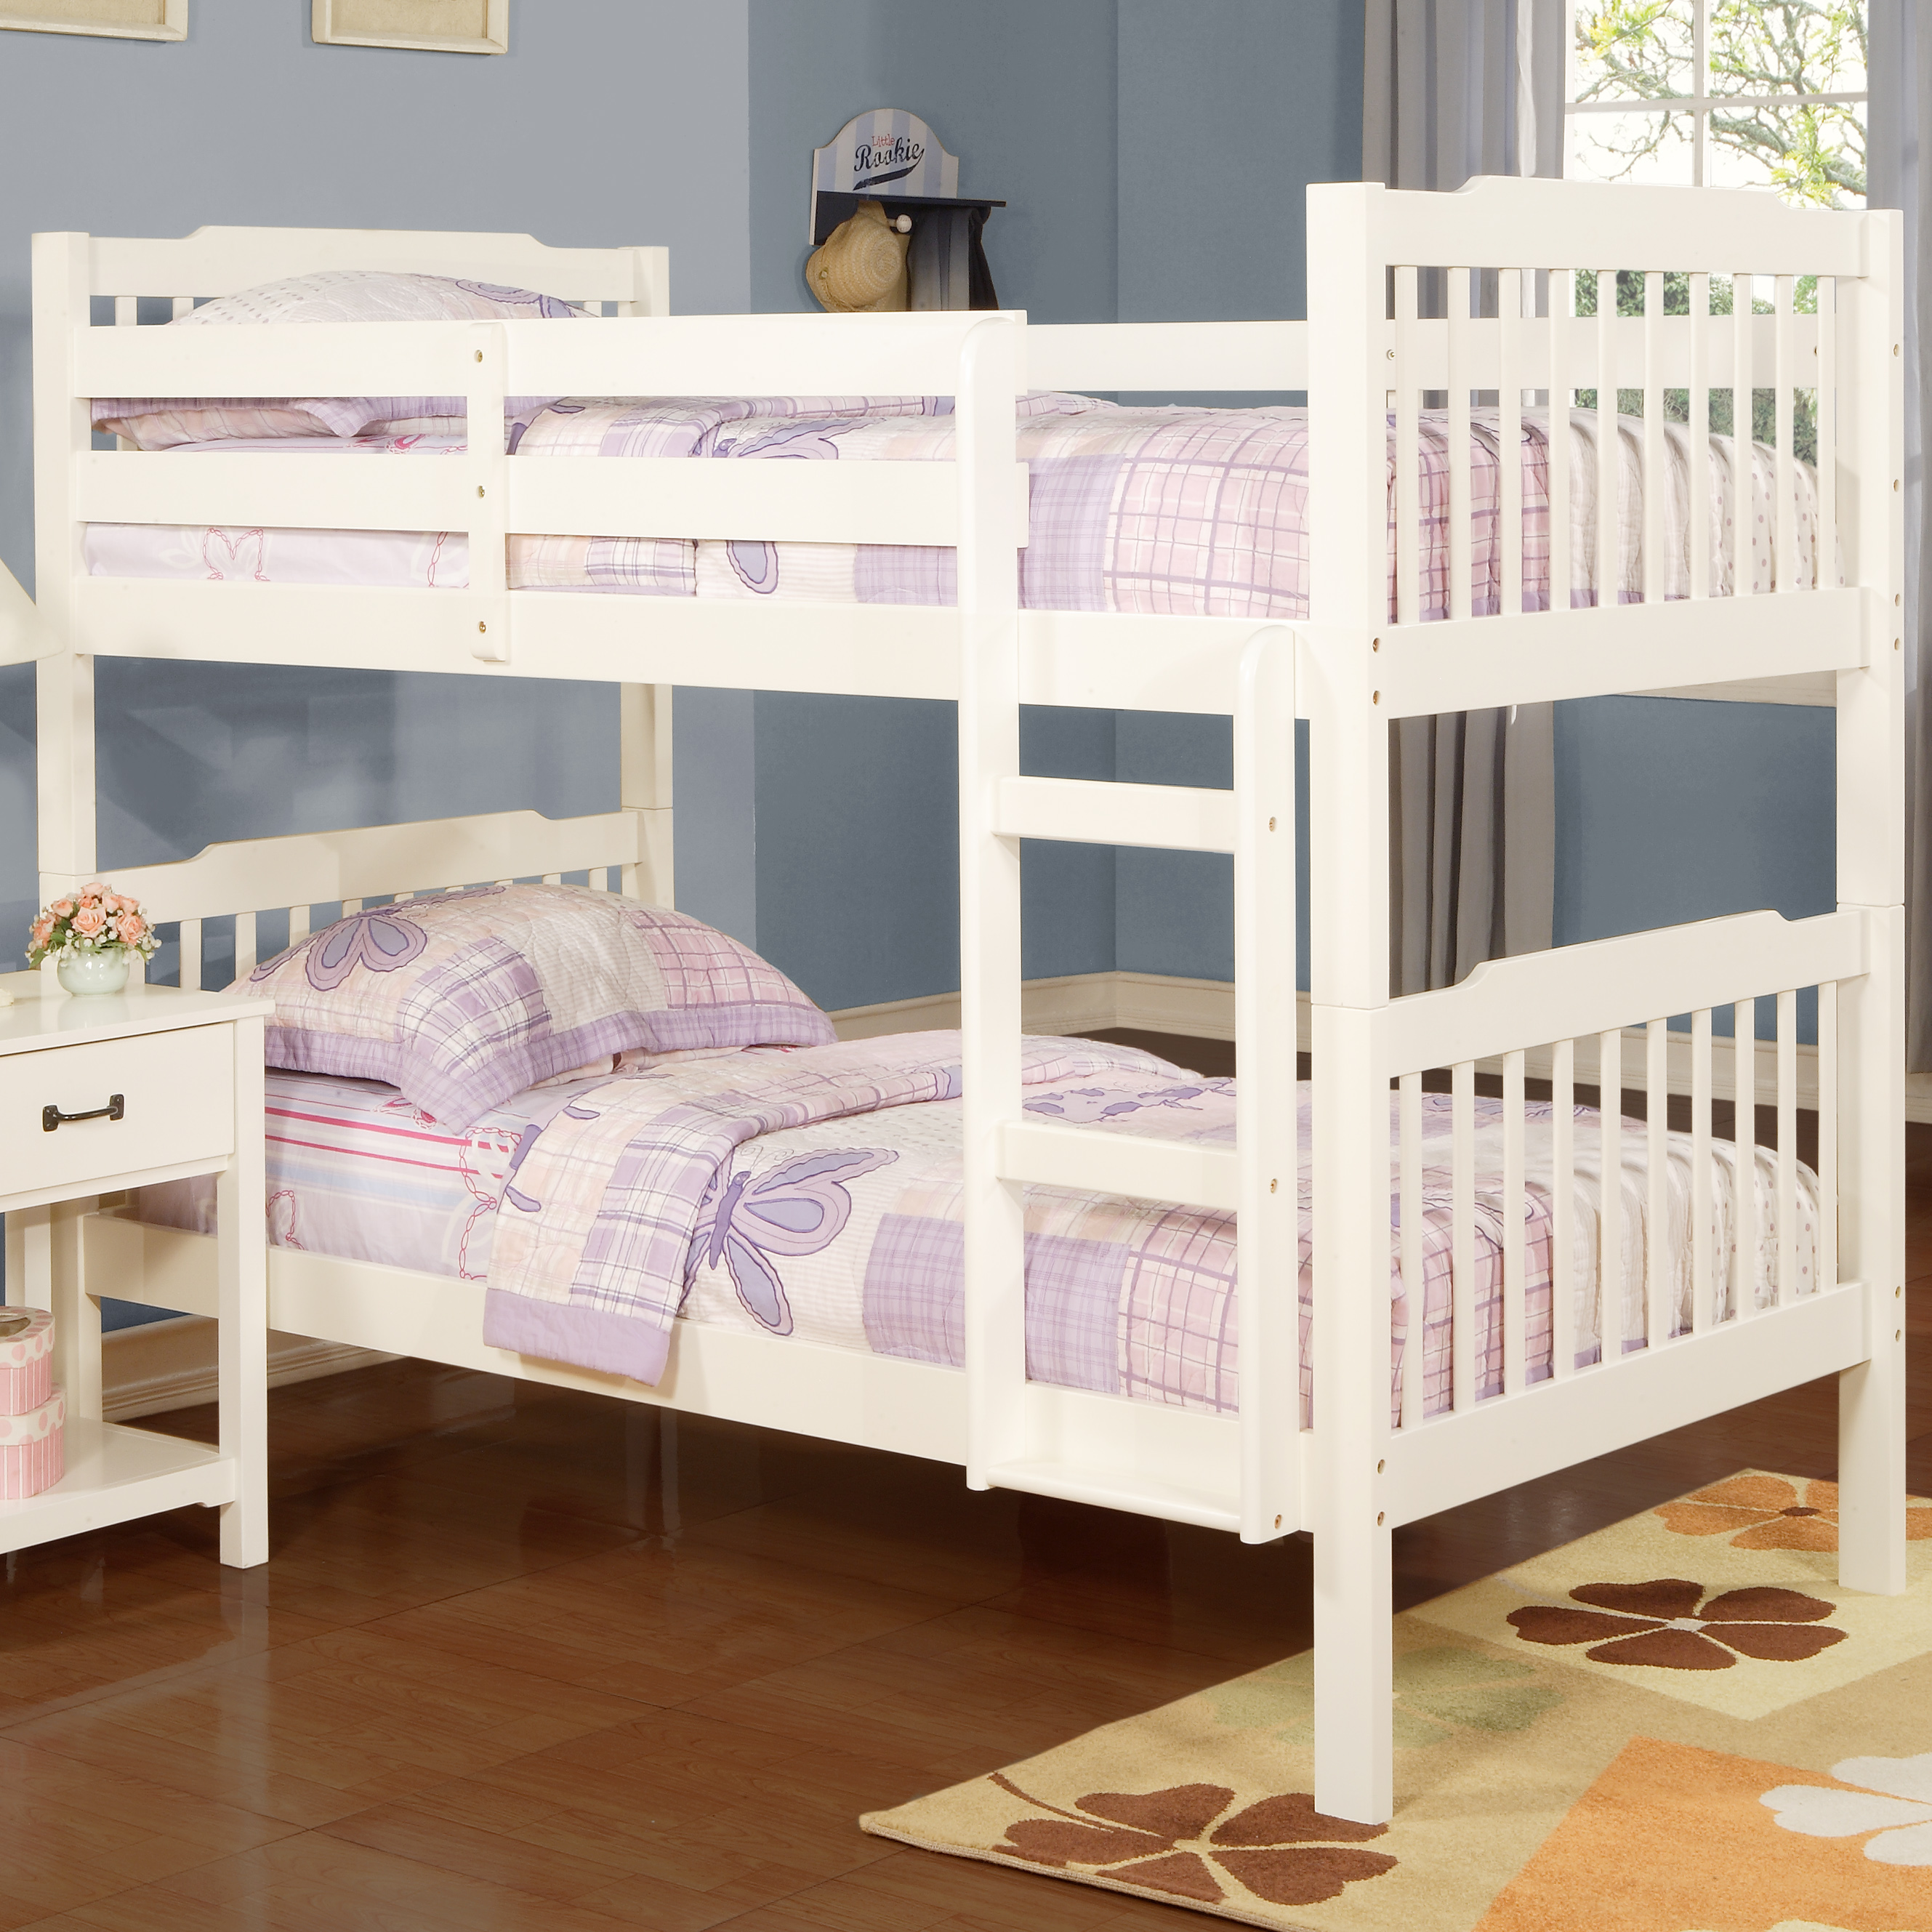 Bunk Bed With Stairway